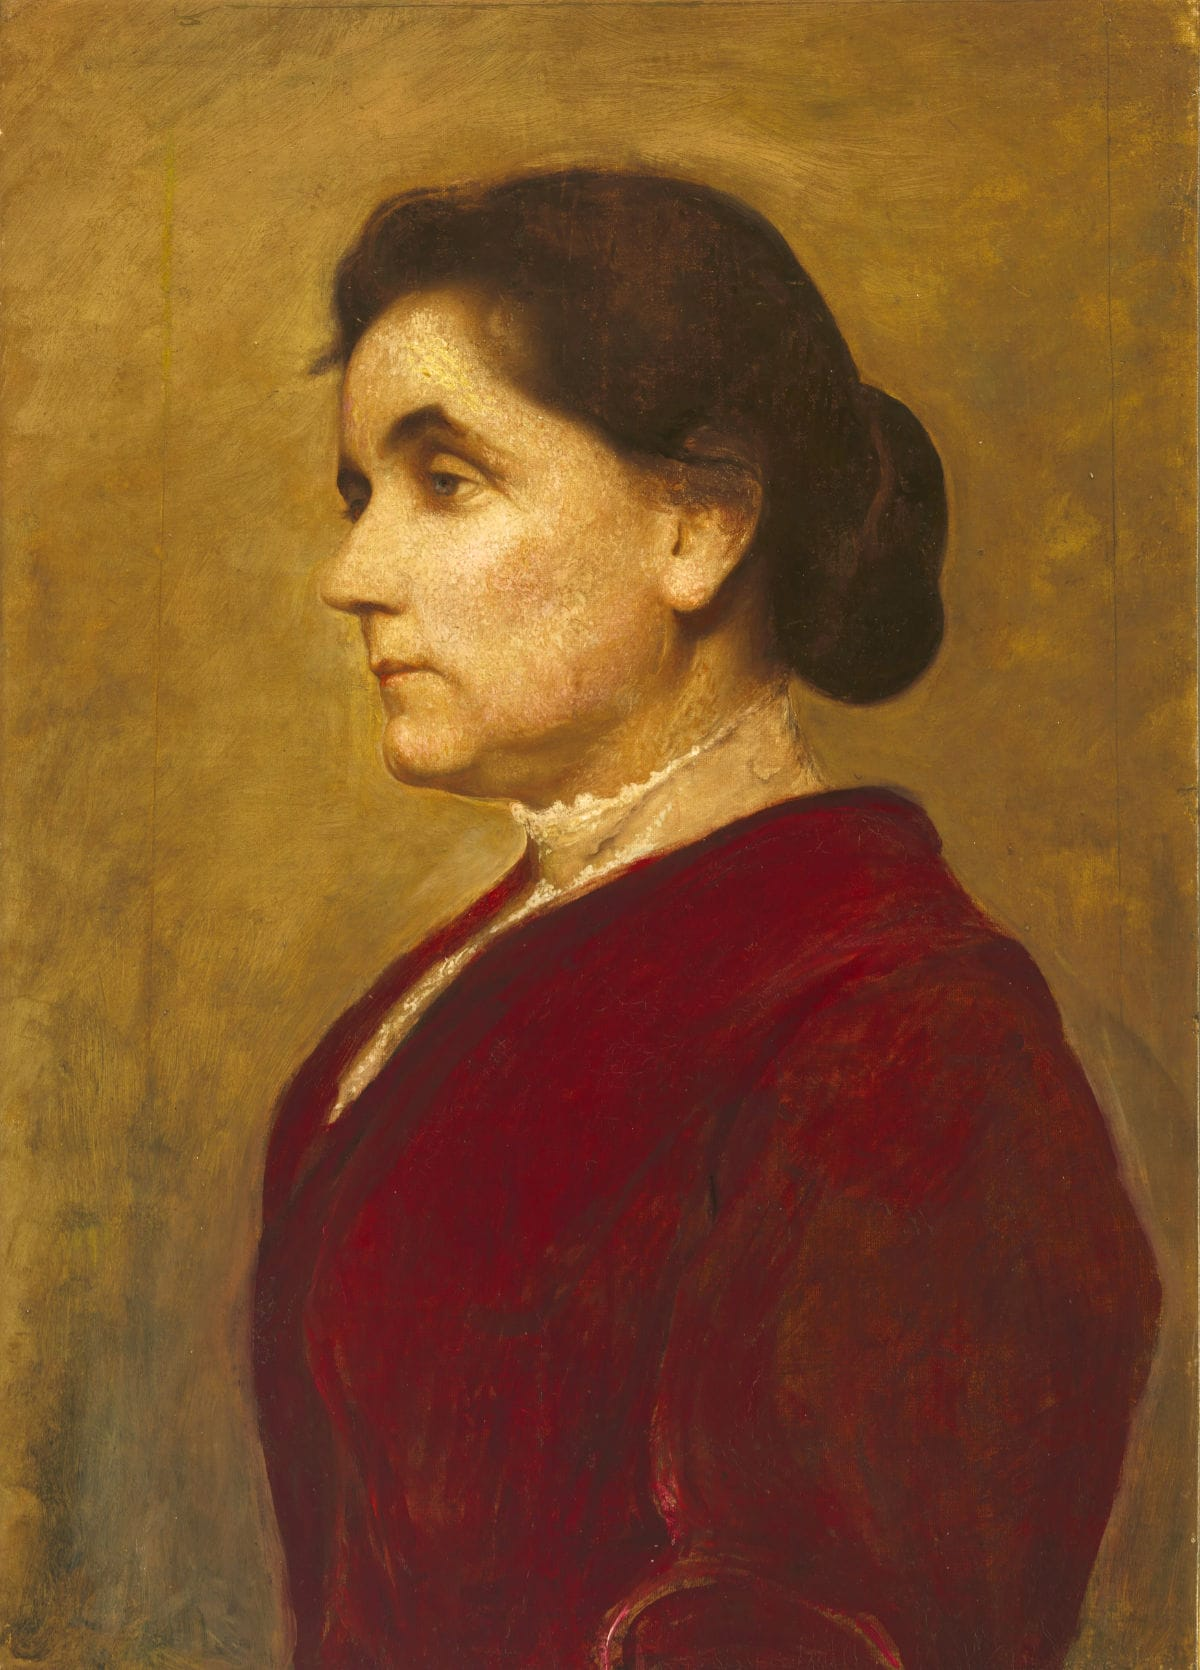 Jane Addams painted by George de Forest Brush, National Portrait Gallery, Smithsonian Institution.  Sourced from Wikimedia - listed as being in the public domain.